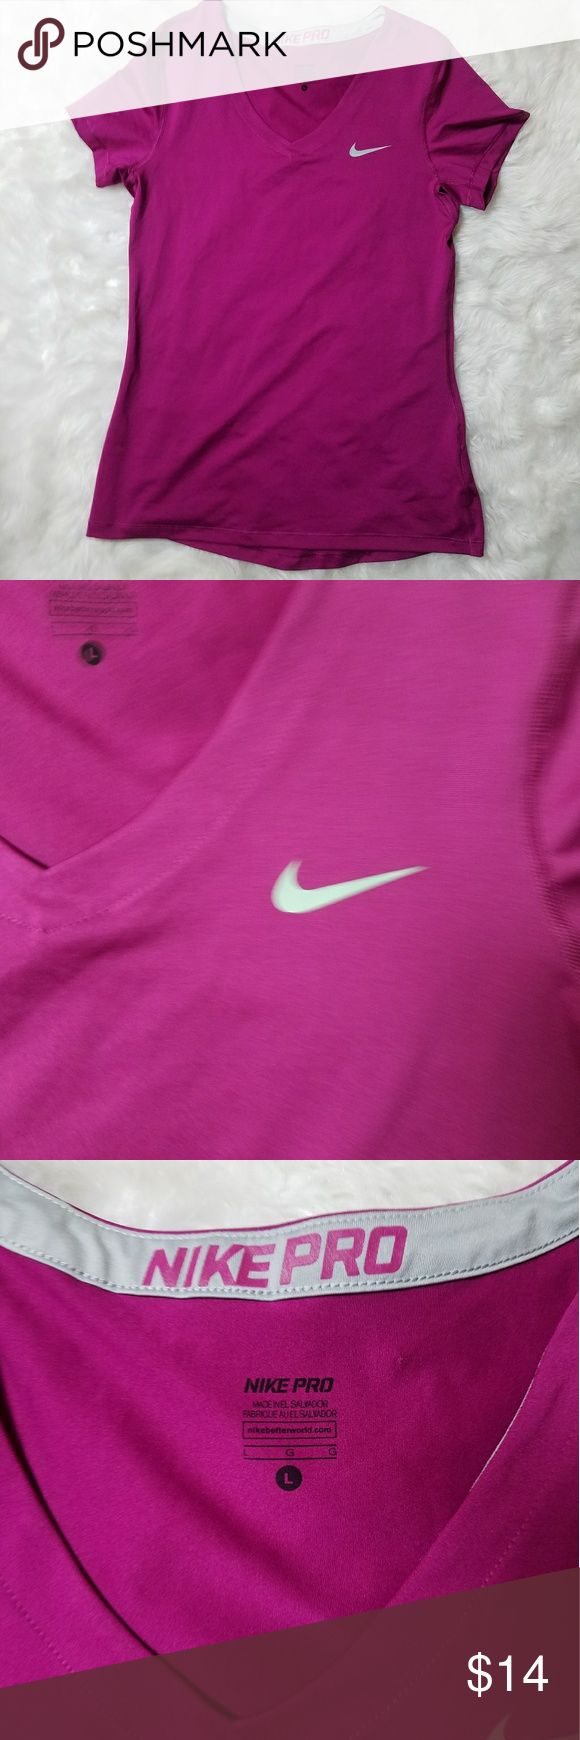 Nike Pro shorts leave v-neck purple shirt large Nike Pro Dri-Fit women's short sleeve v-neck purple shirt size large  (B)  60% cotton 40% polyester  armpit to armpit measures 17in unstretched  armpit to hem measure 17 in  excellent used condition Nike Tops Tees - Short Sleeve